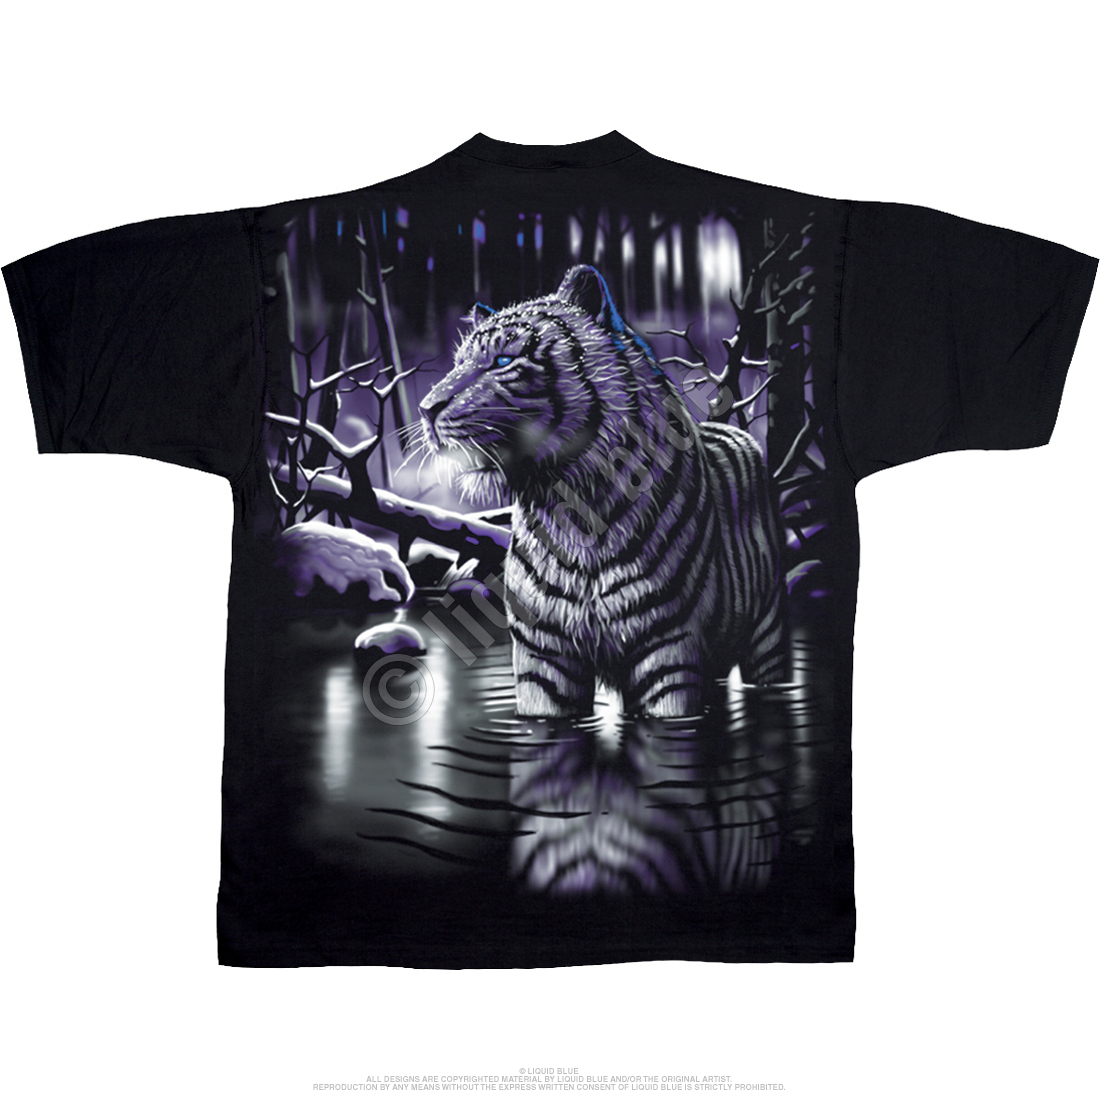 Shop from the most unique and quirky collection including tiger t-shirts, animal print t shirts online and more at The Mountain. Order now!